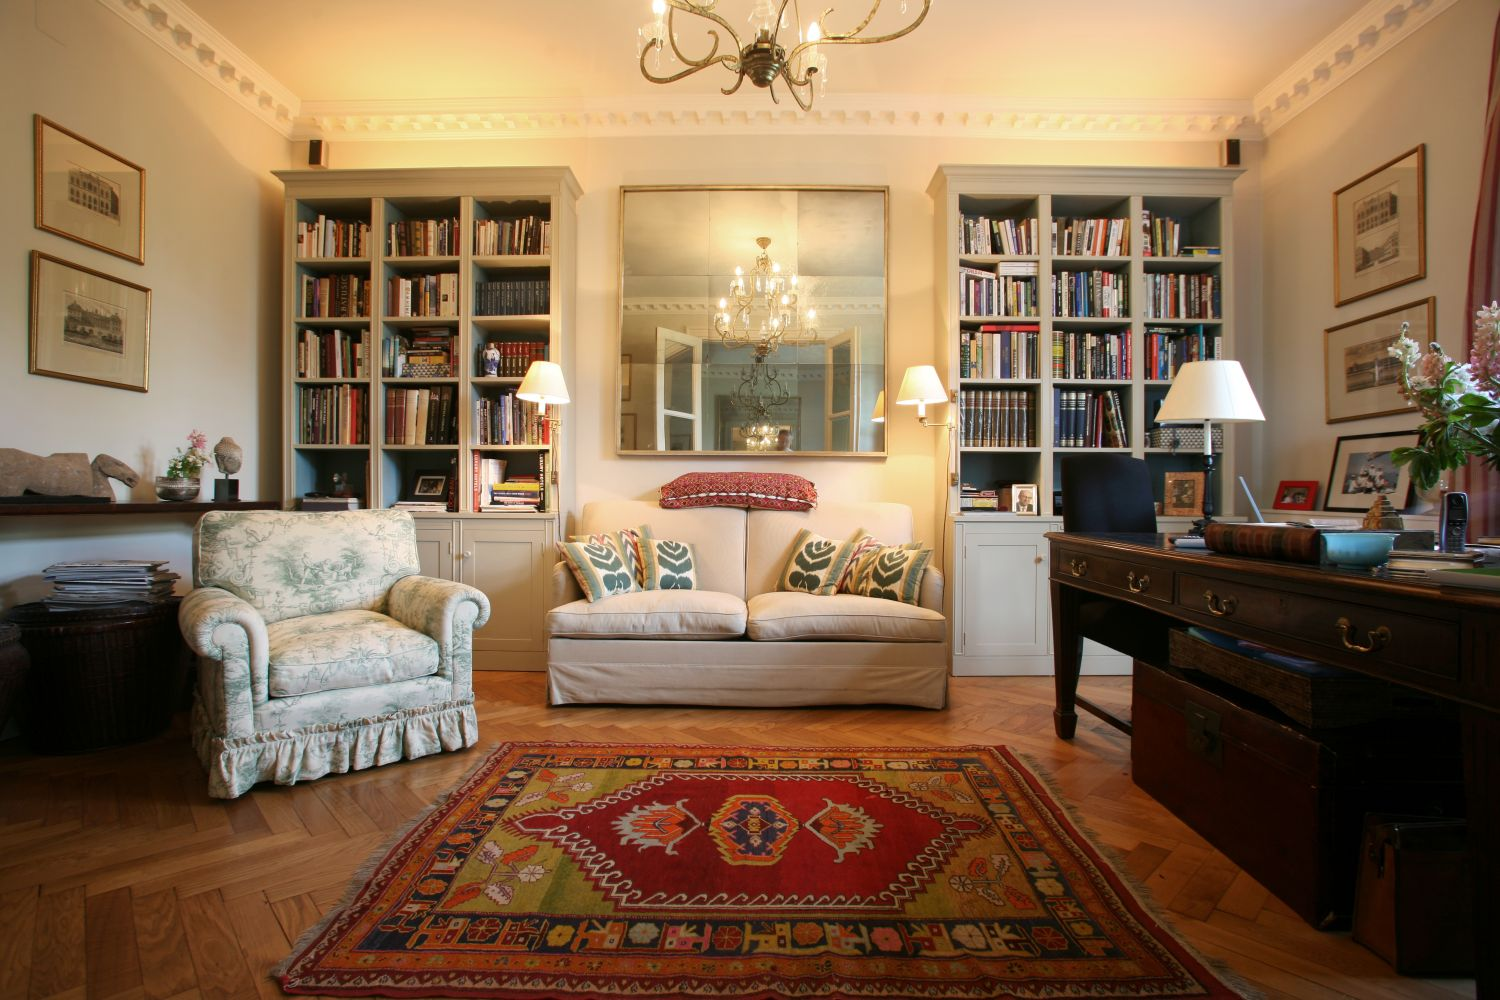 rearranging is an easy way to stay warm without turning up your heating